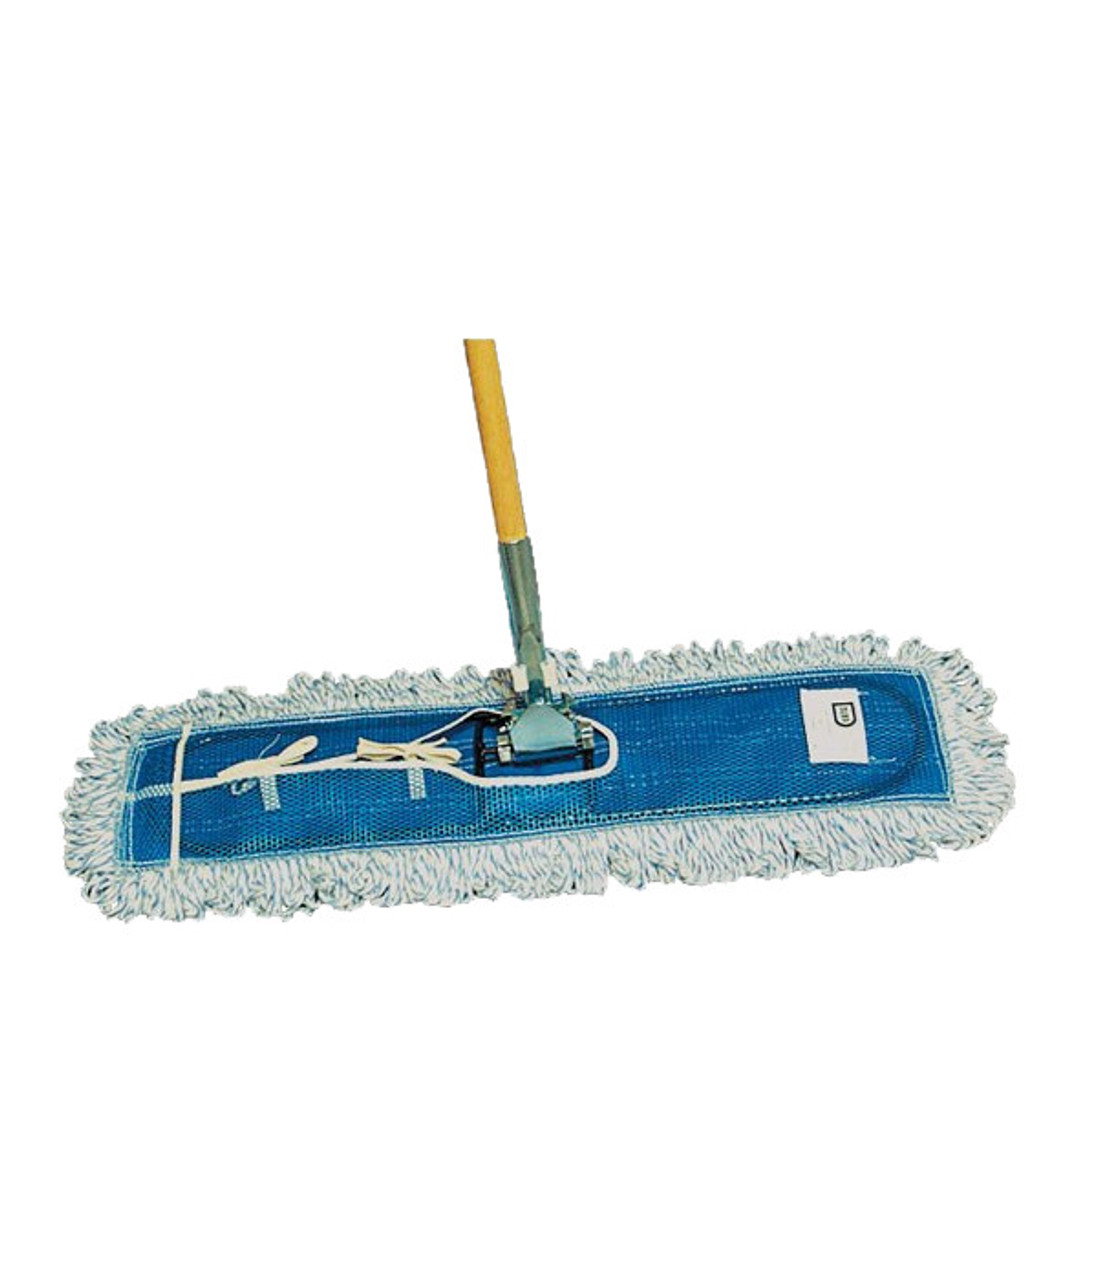 These Floor Finish Mop Heads are the workhorse of the professional floor finisher!